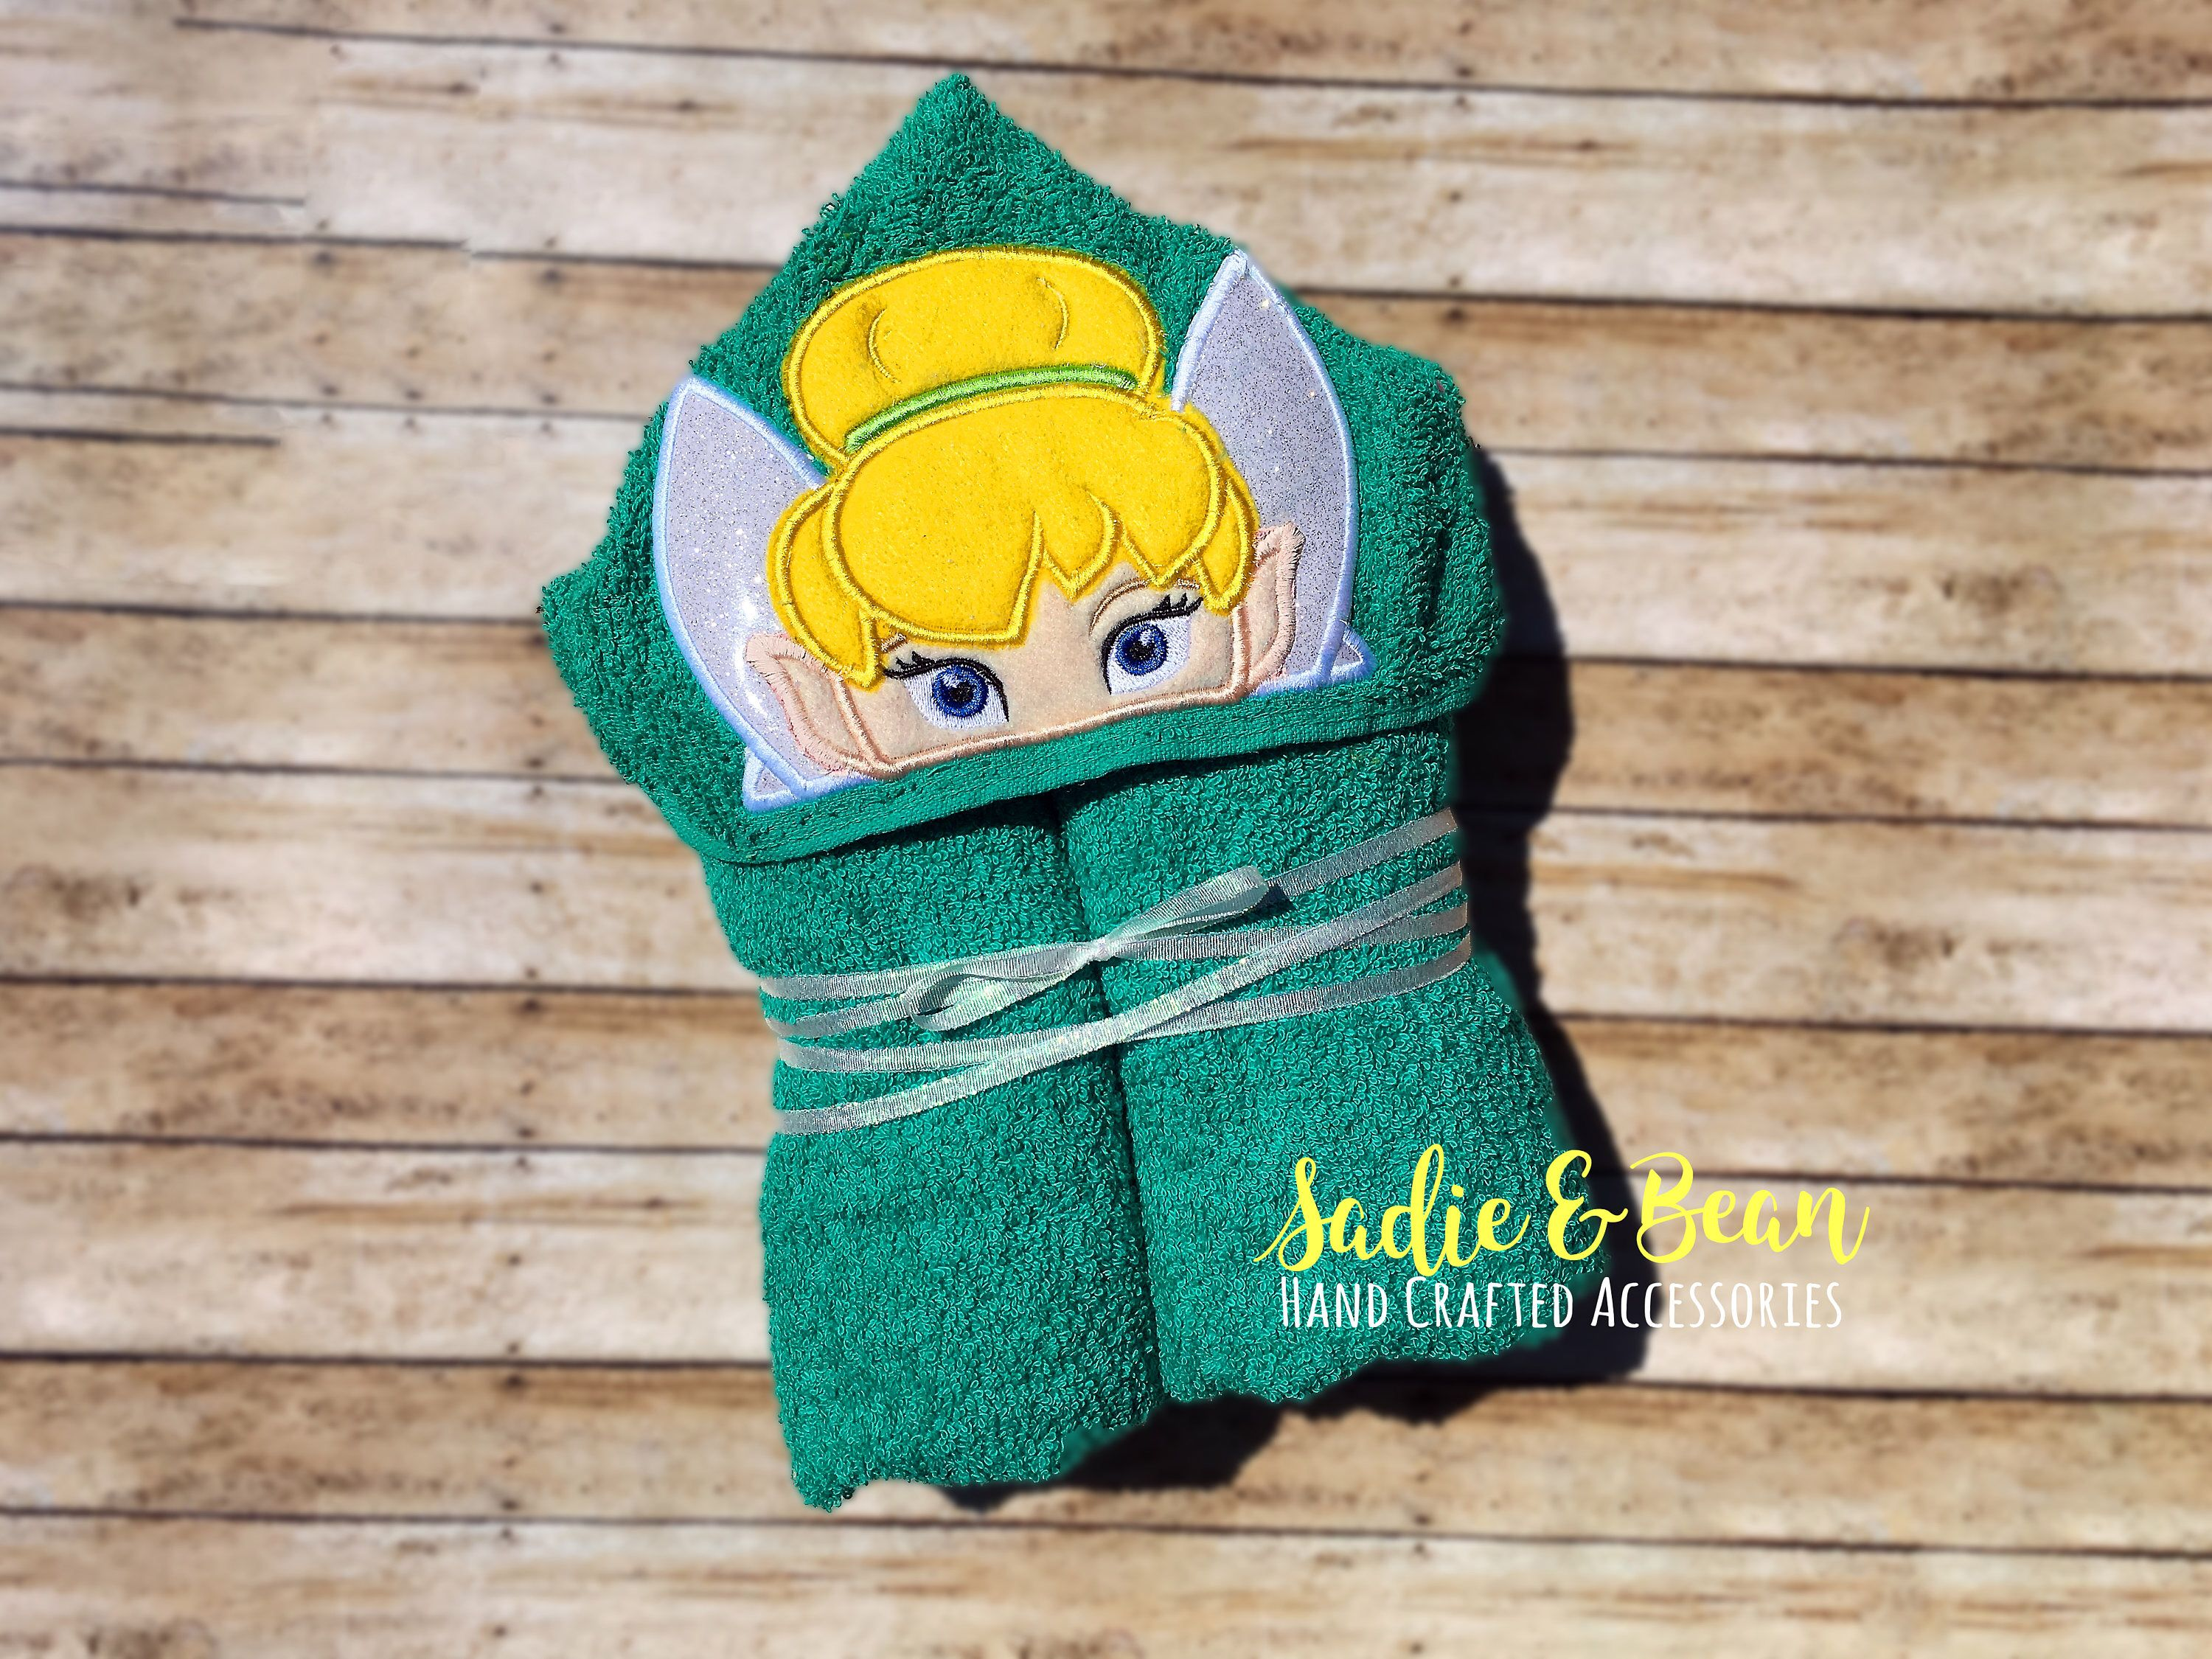 Personalized baby gifts hooded towels fairy baby gift hooded personalized baby gifts hooded towels fairy baby gift hooded bath towel baby hooded towel kids beach towel hooded baby towel negle Choice Image